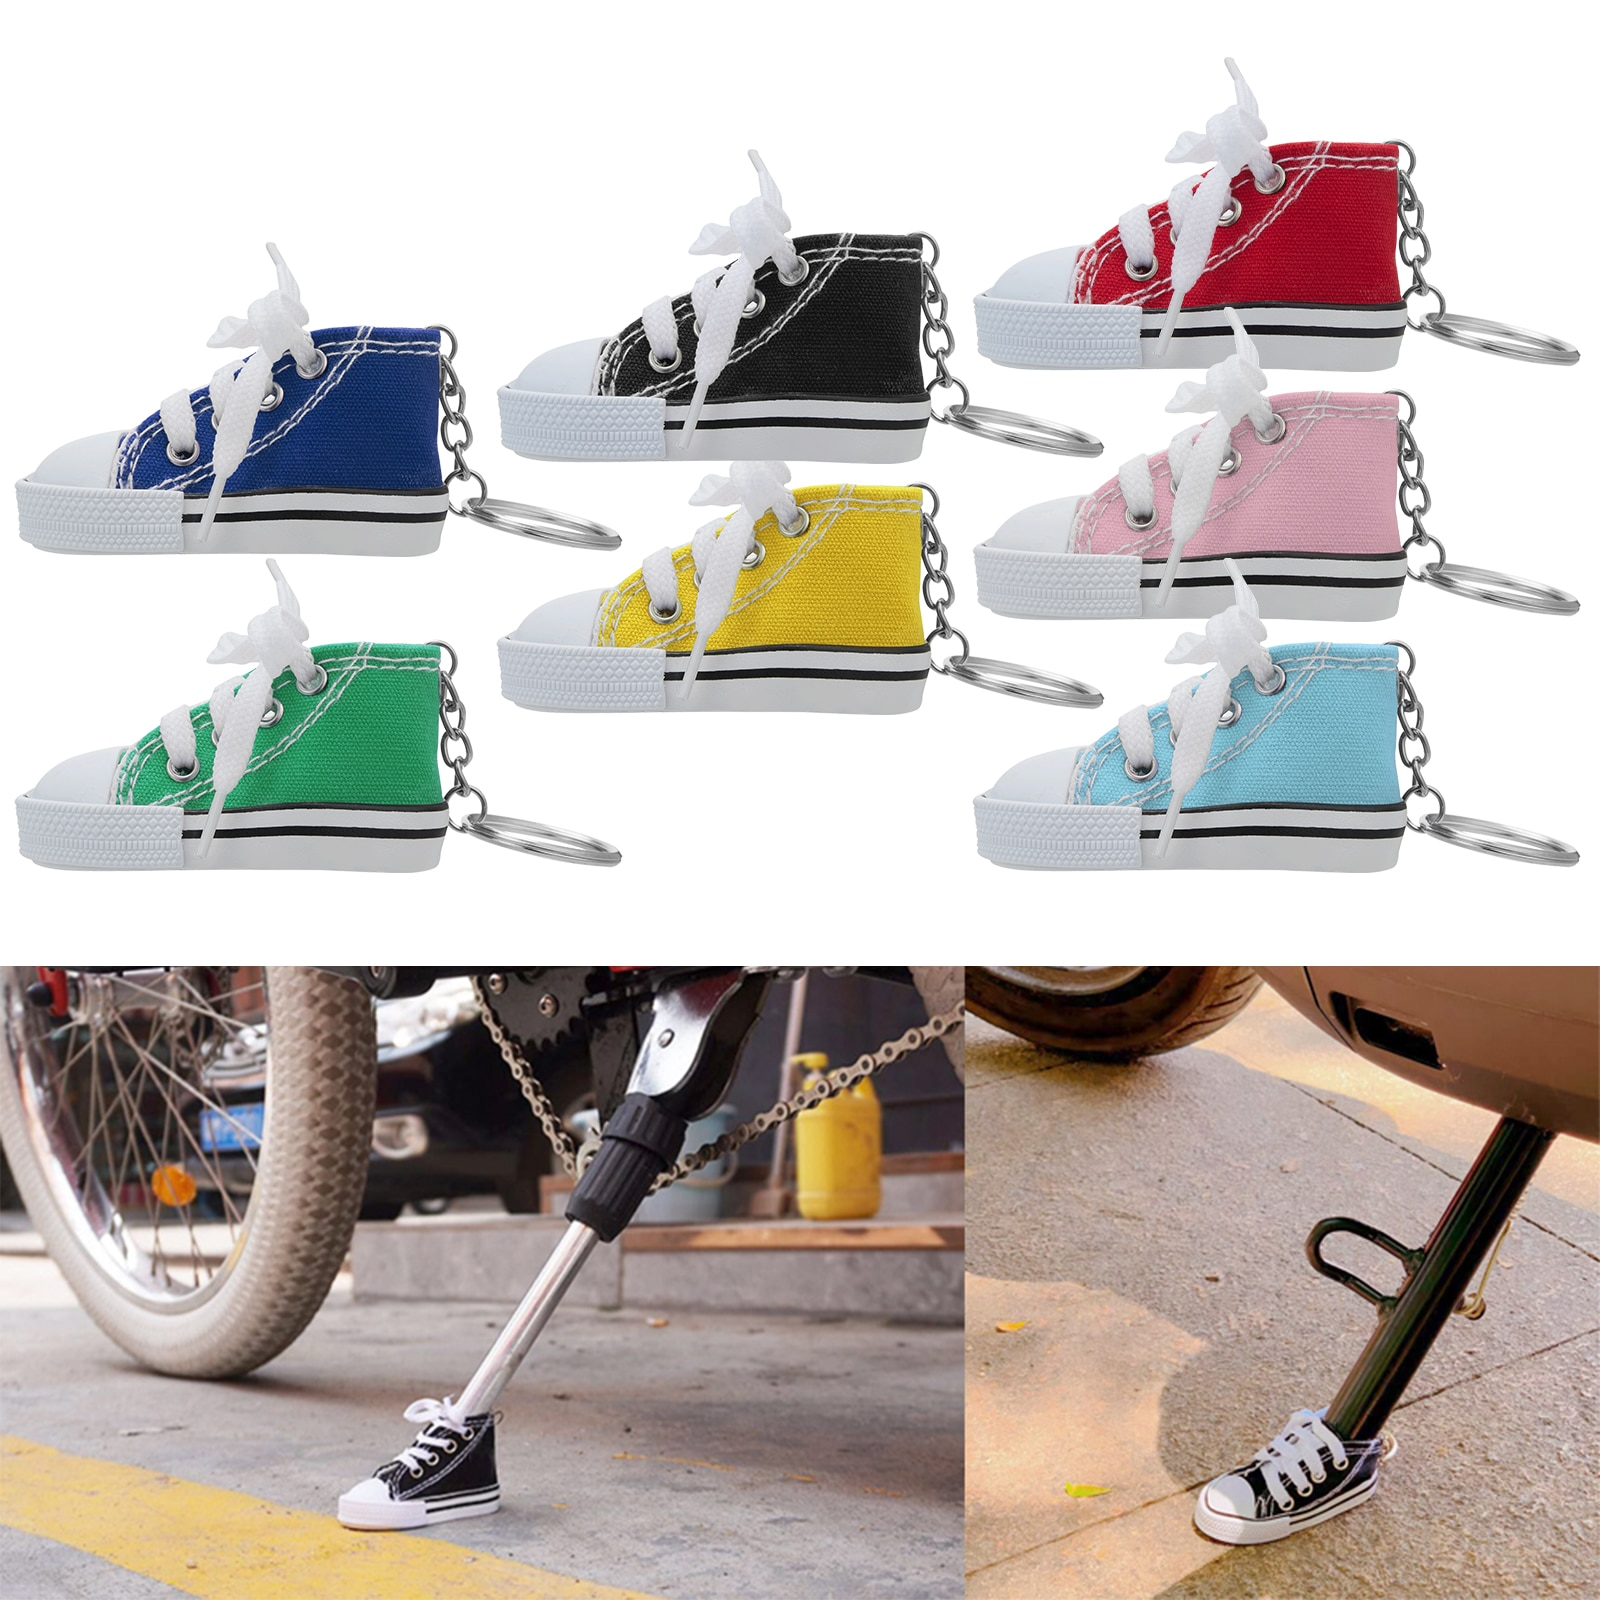 1 Pcs Creative Tripod Cover for Motorcycle Bicycle Side Shoe Shape Foot Support Electric Bike Tripod